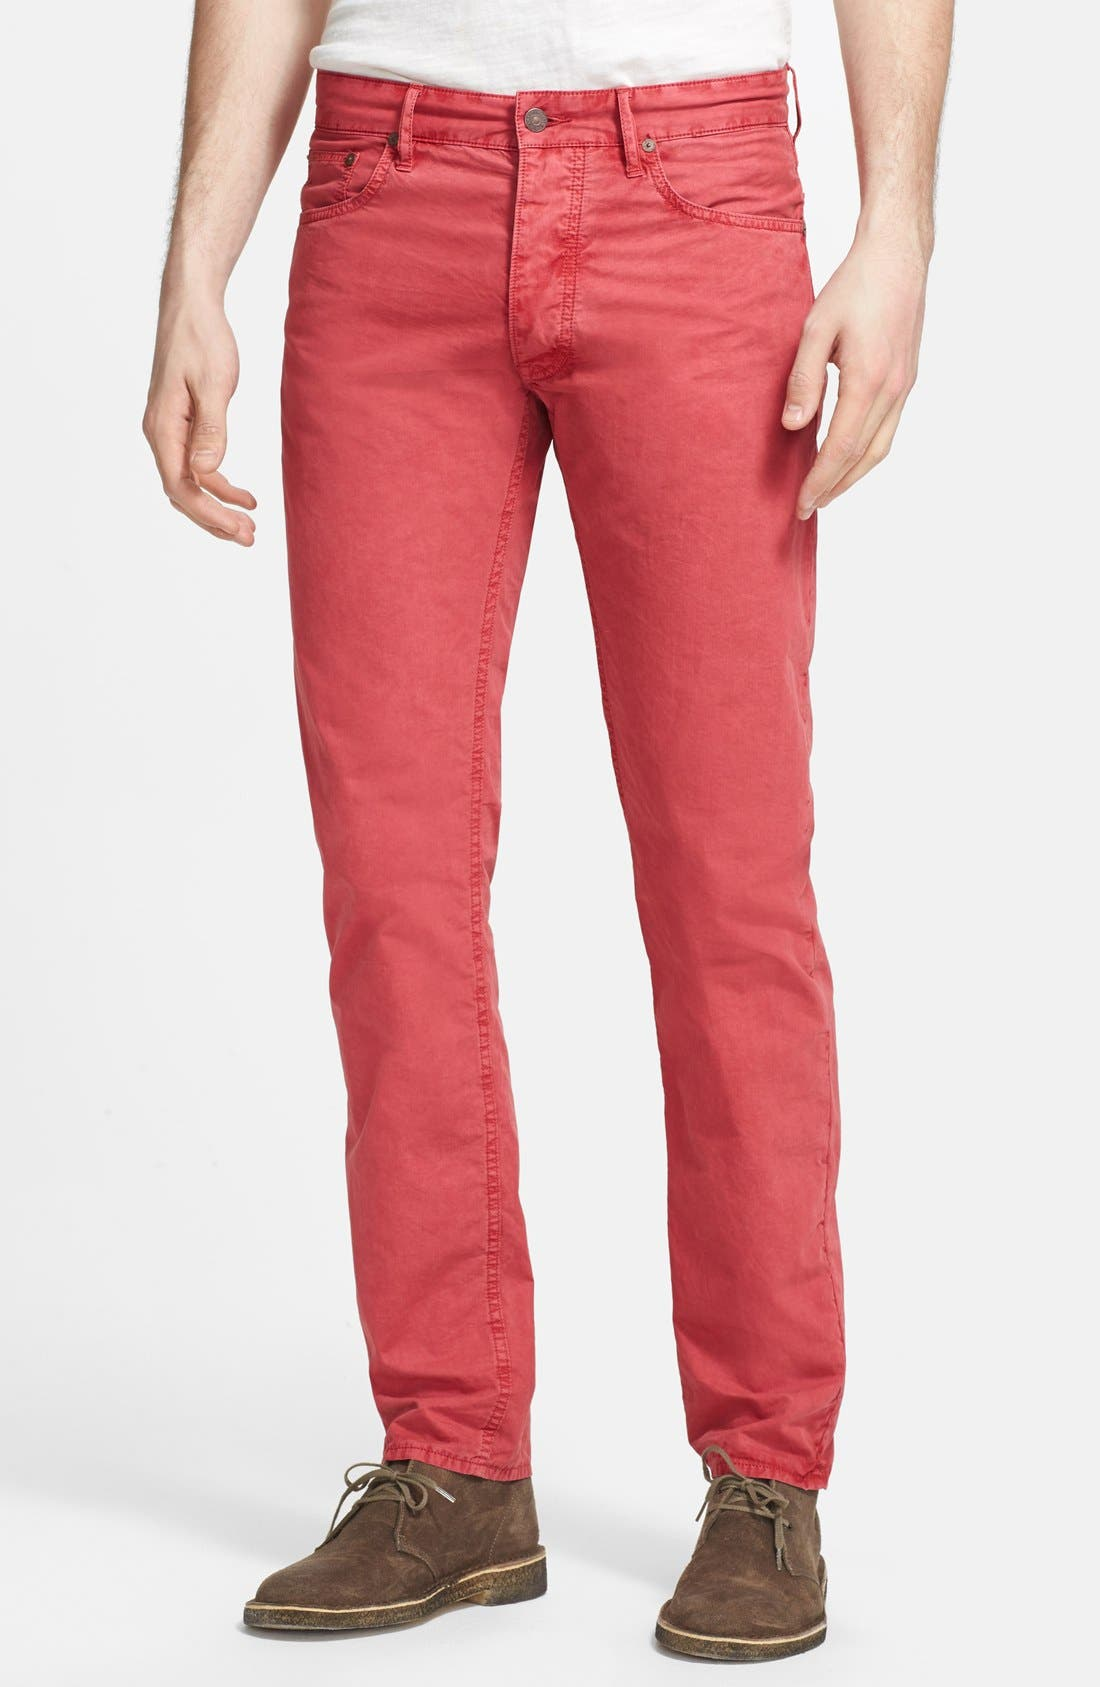 Alternate Image 1 Selected - Polo Ralph Lauren Slim Fit Poplin Pants (Nantucket Red)